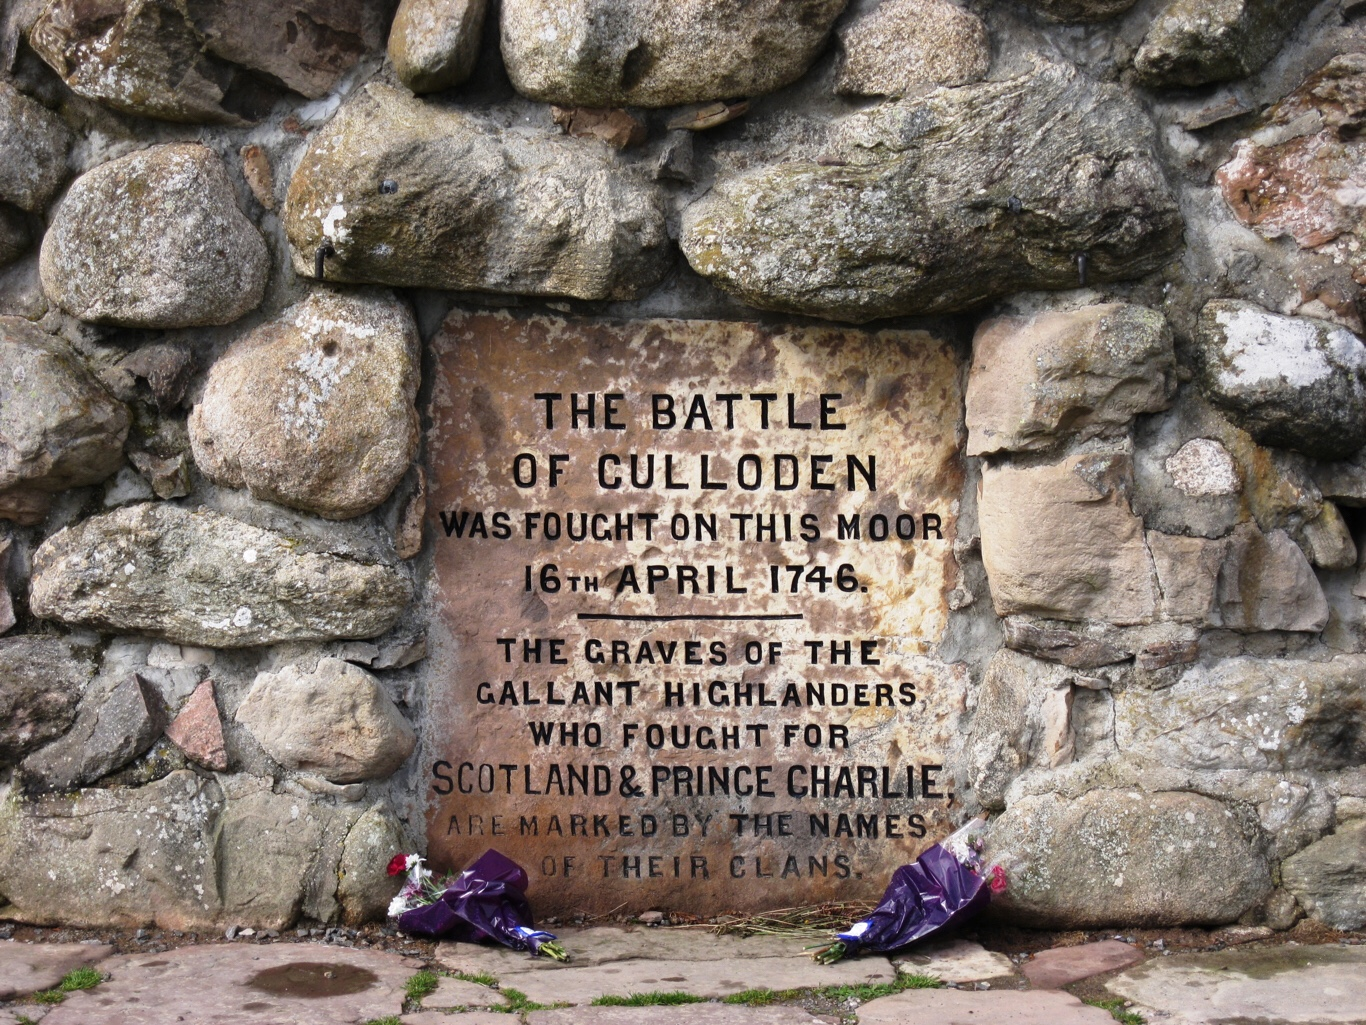 The Battle of Culloden April 16, 1746